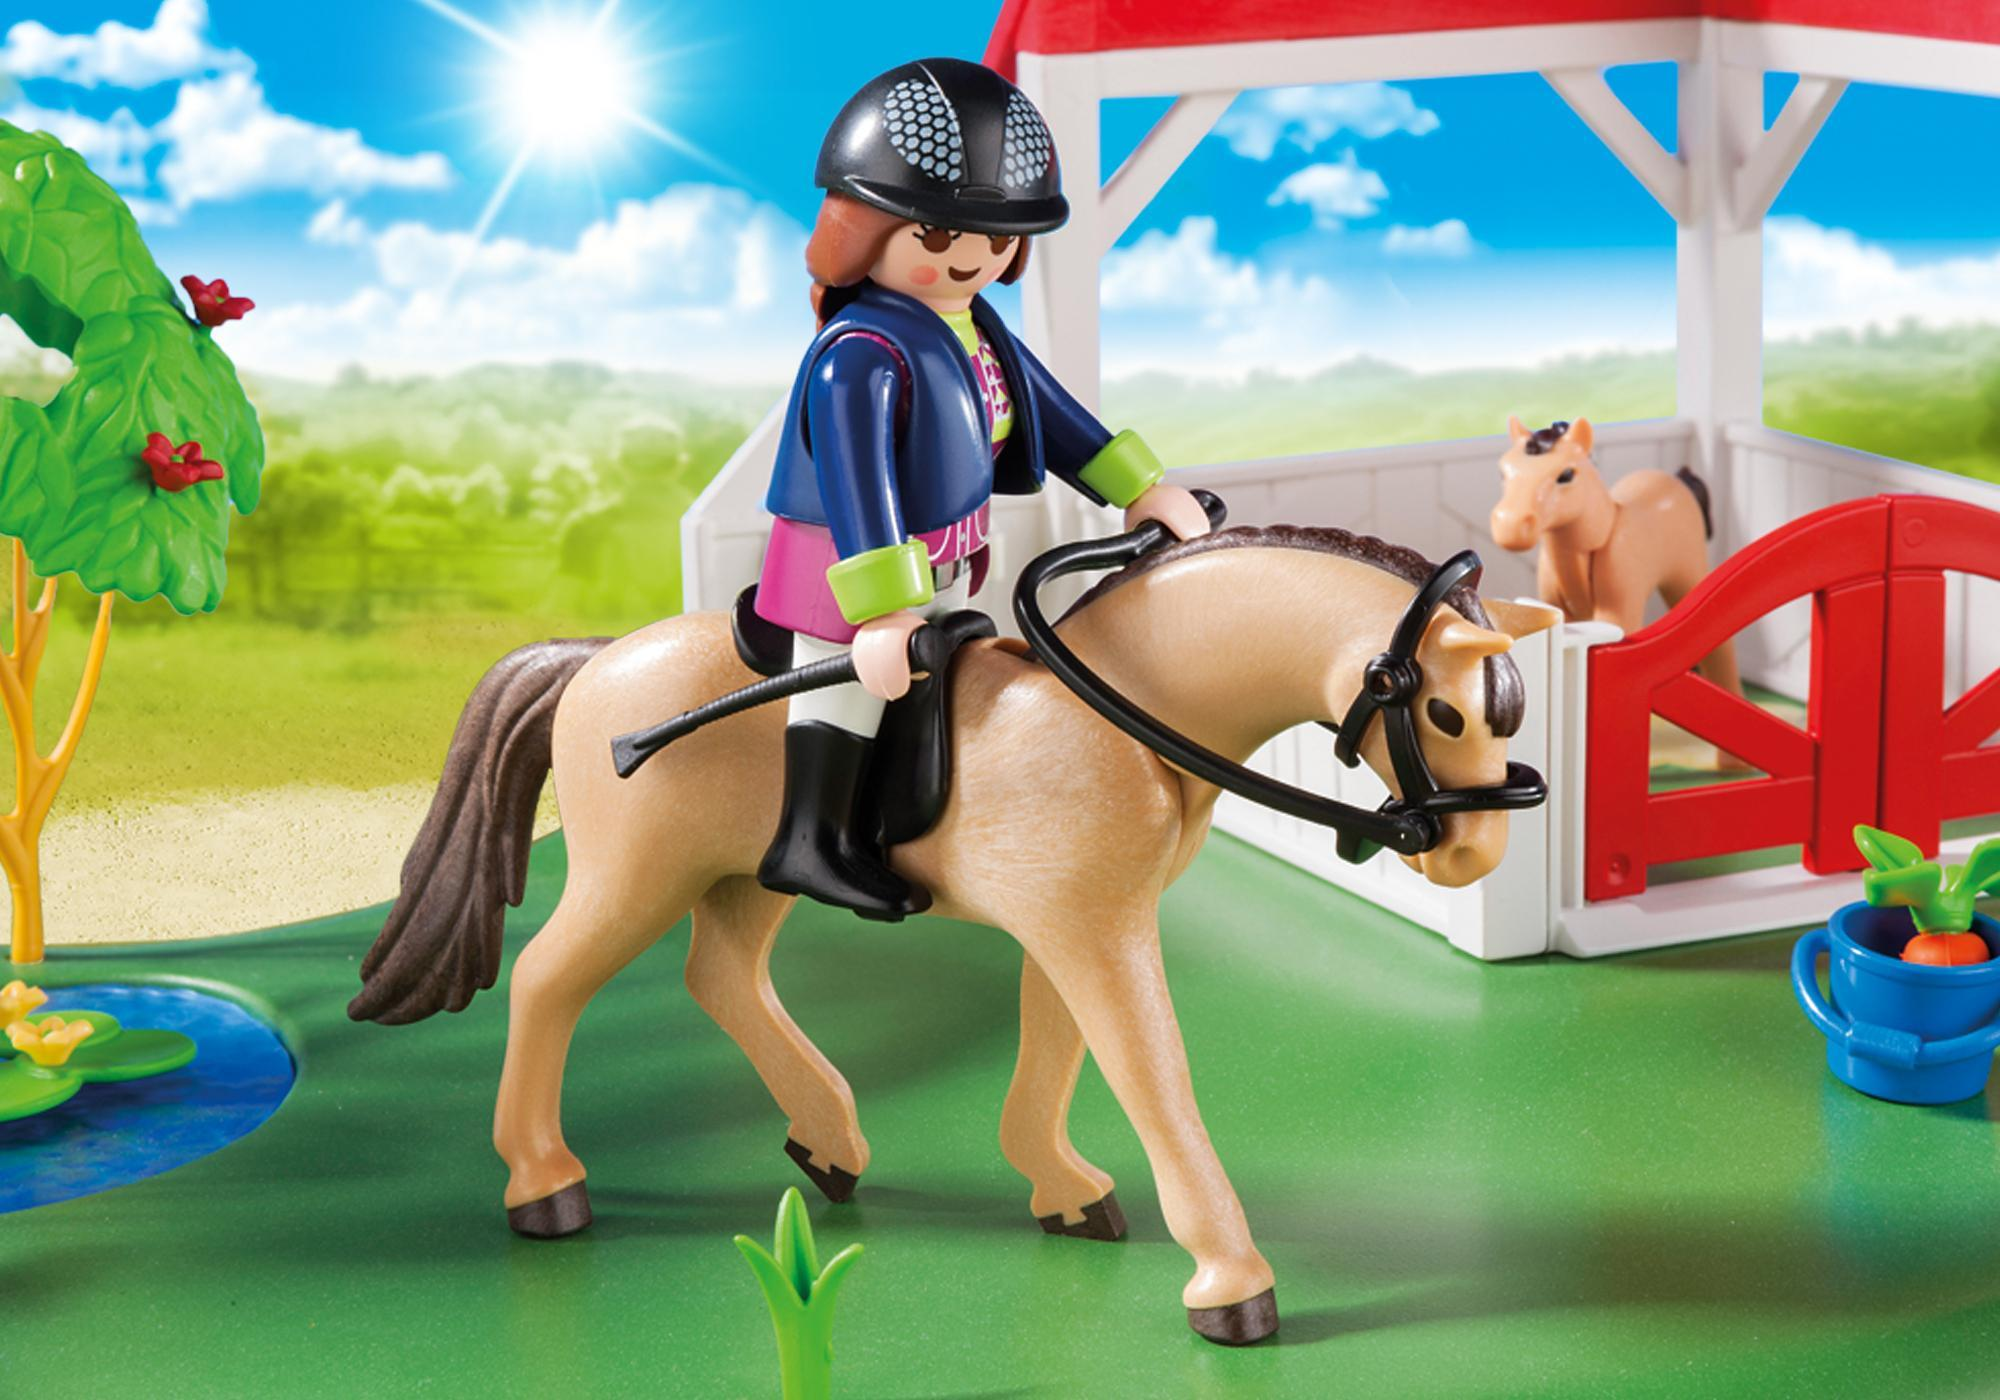 http://media.playmobil.com/i/playmobil/6147_product_extra1